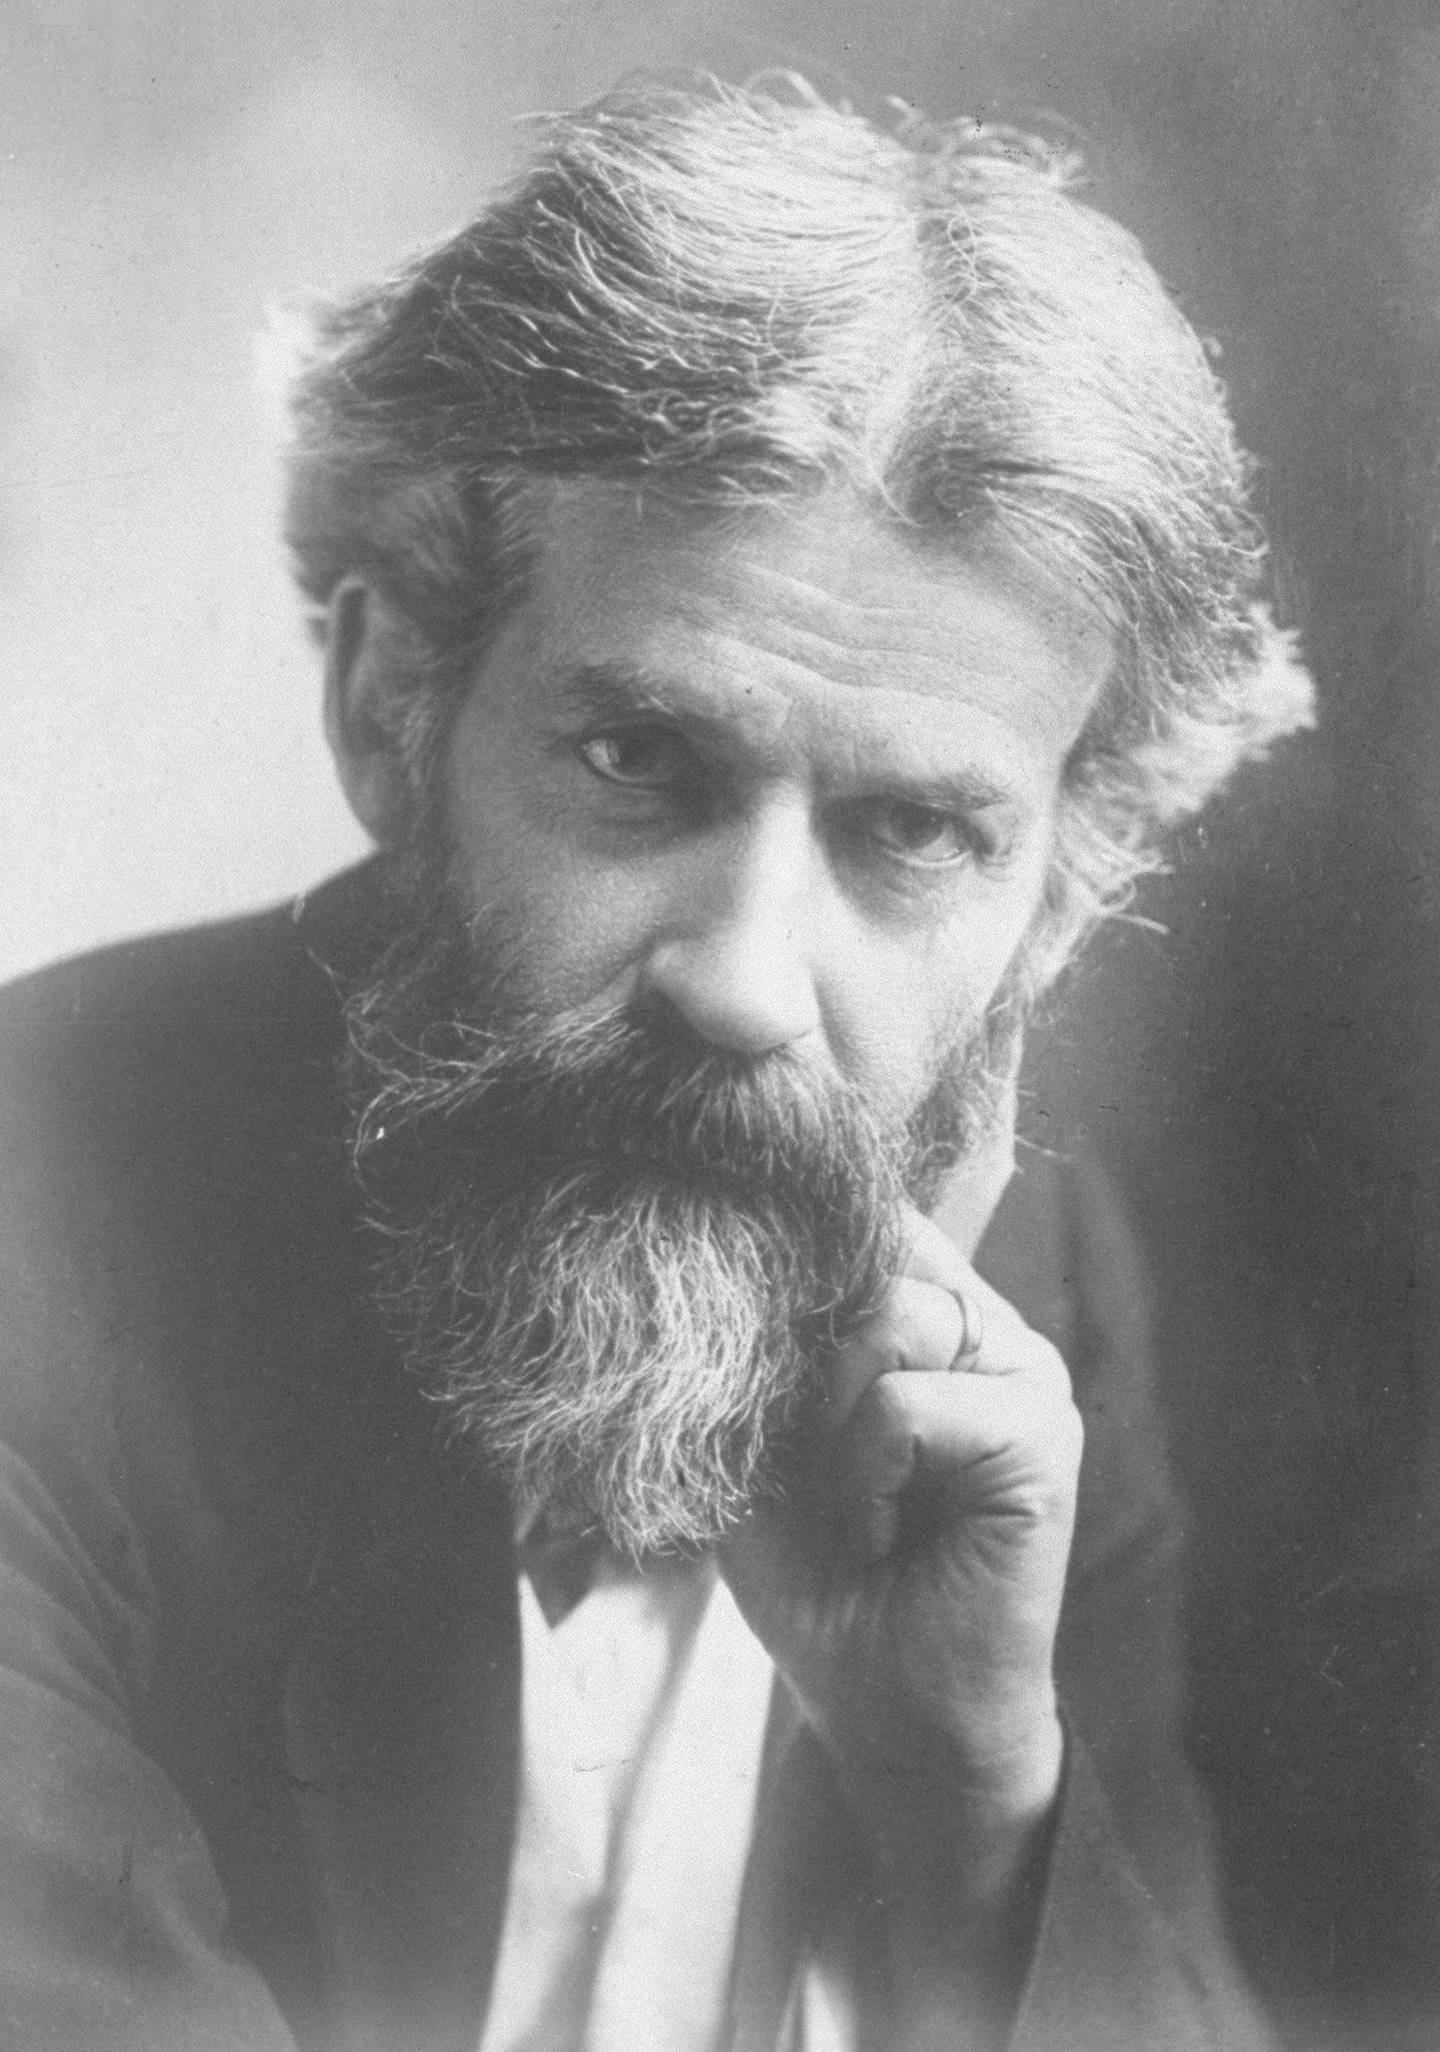 UNSPECIFIED - 1930:  Portrait of sociologist Sir Patrick Geddes, who was commissioned by the British government to modernize and design buildings for Hebrew University on the Mount of Olives in Palestine.  (Photo by Underwood And Underwood/Underwood And Underwood/The LIFE Images Collection via Getty Images/Getty Images)